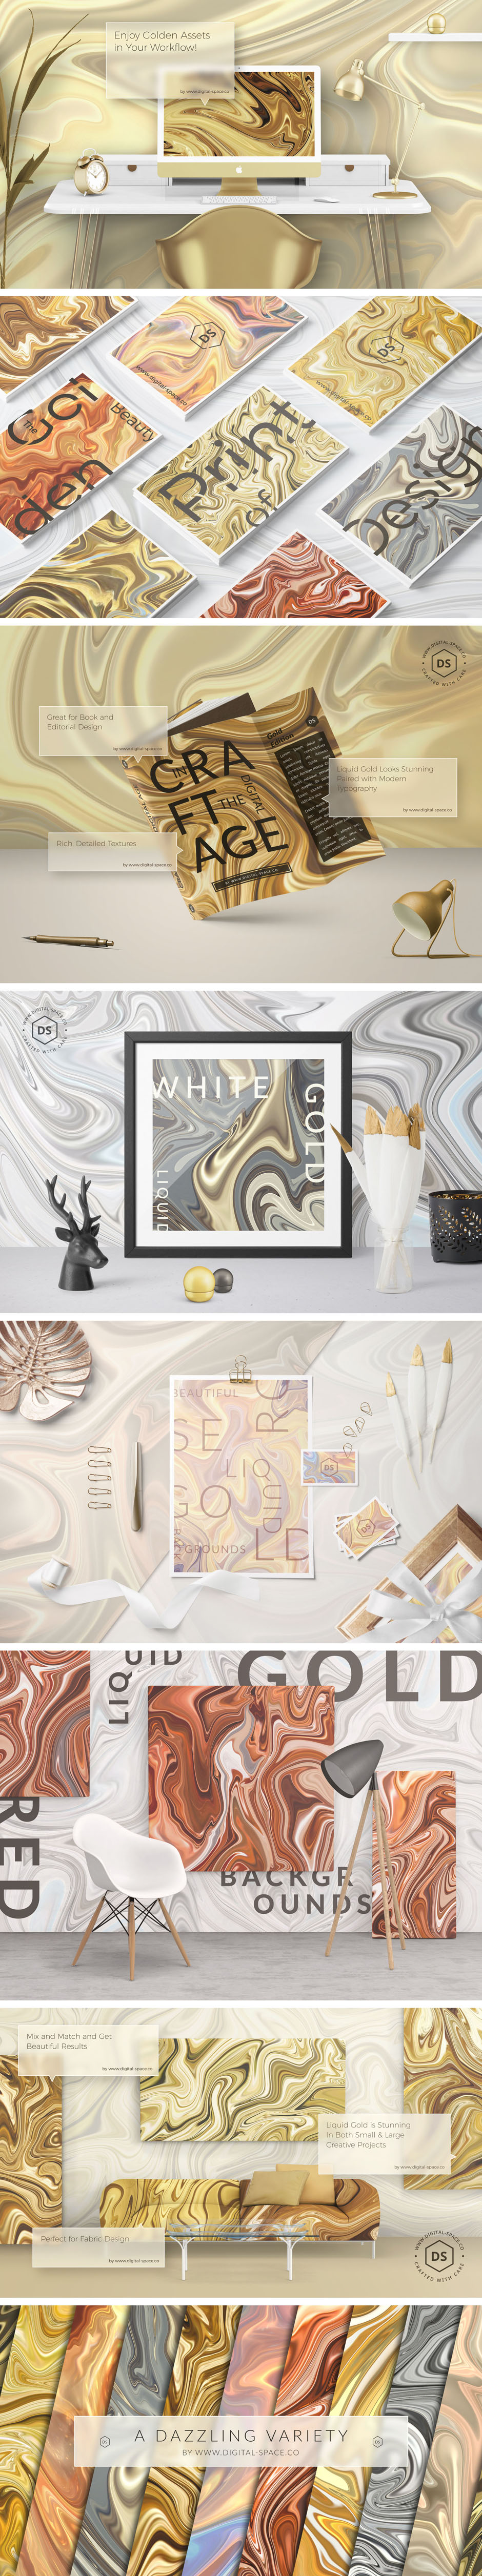 The Vibrant Textures and Patterns Bundle